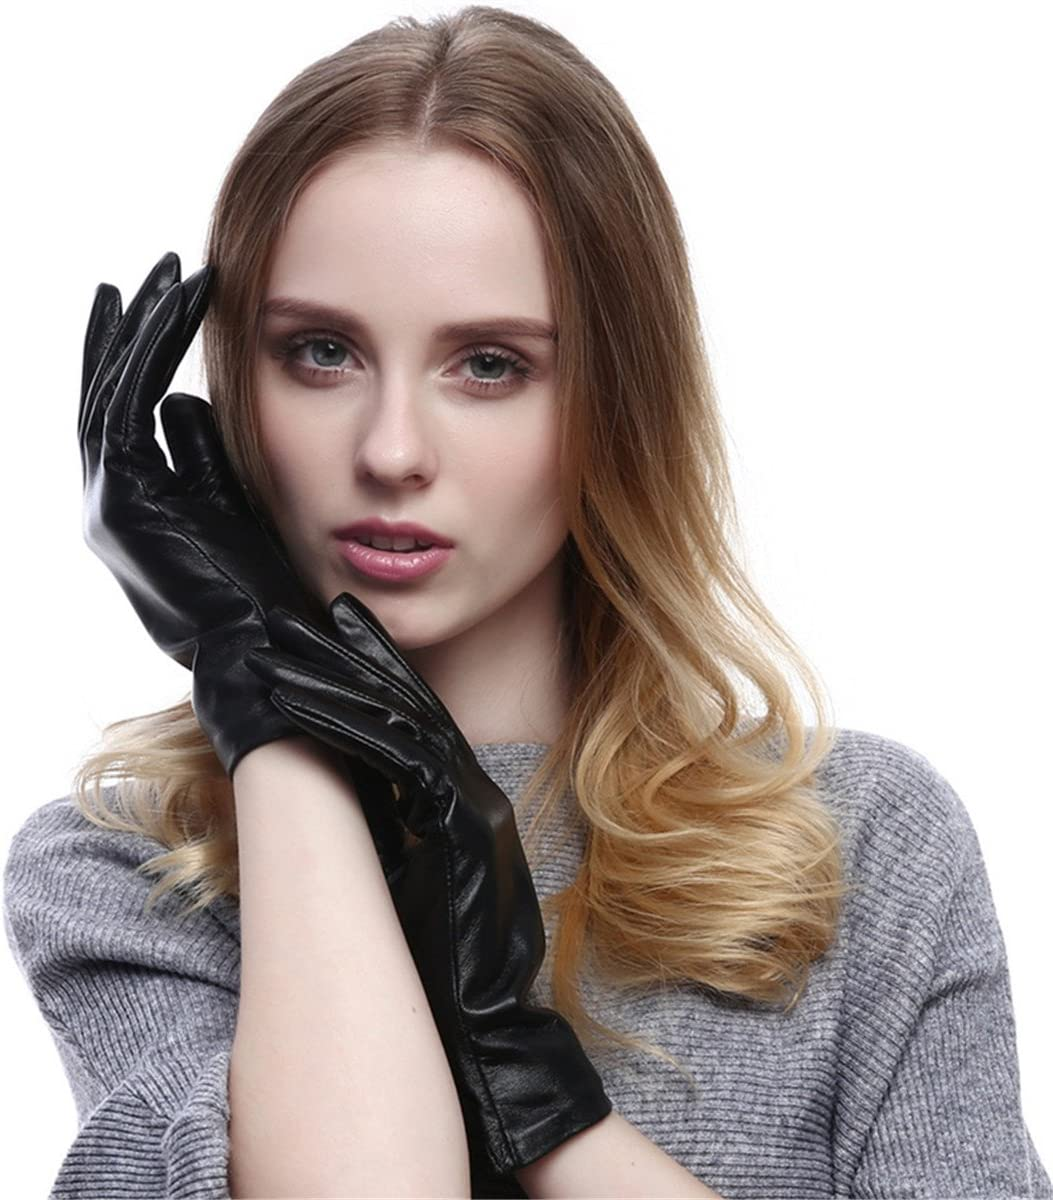 Qhome Women's Touchscreen Texting Driving Winter Warm Nappa Leather Gloves